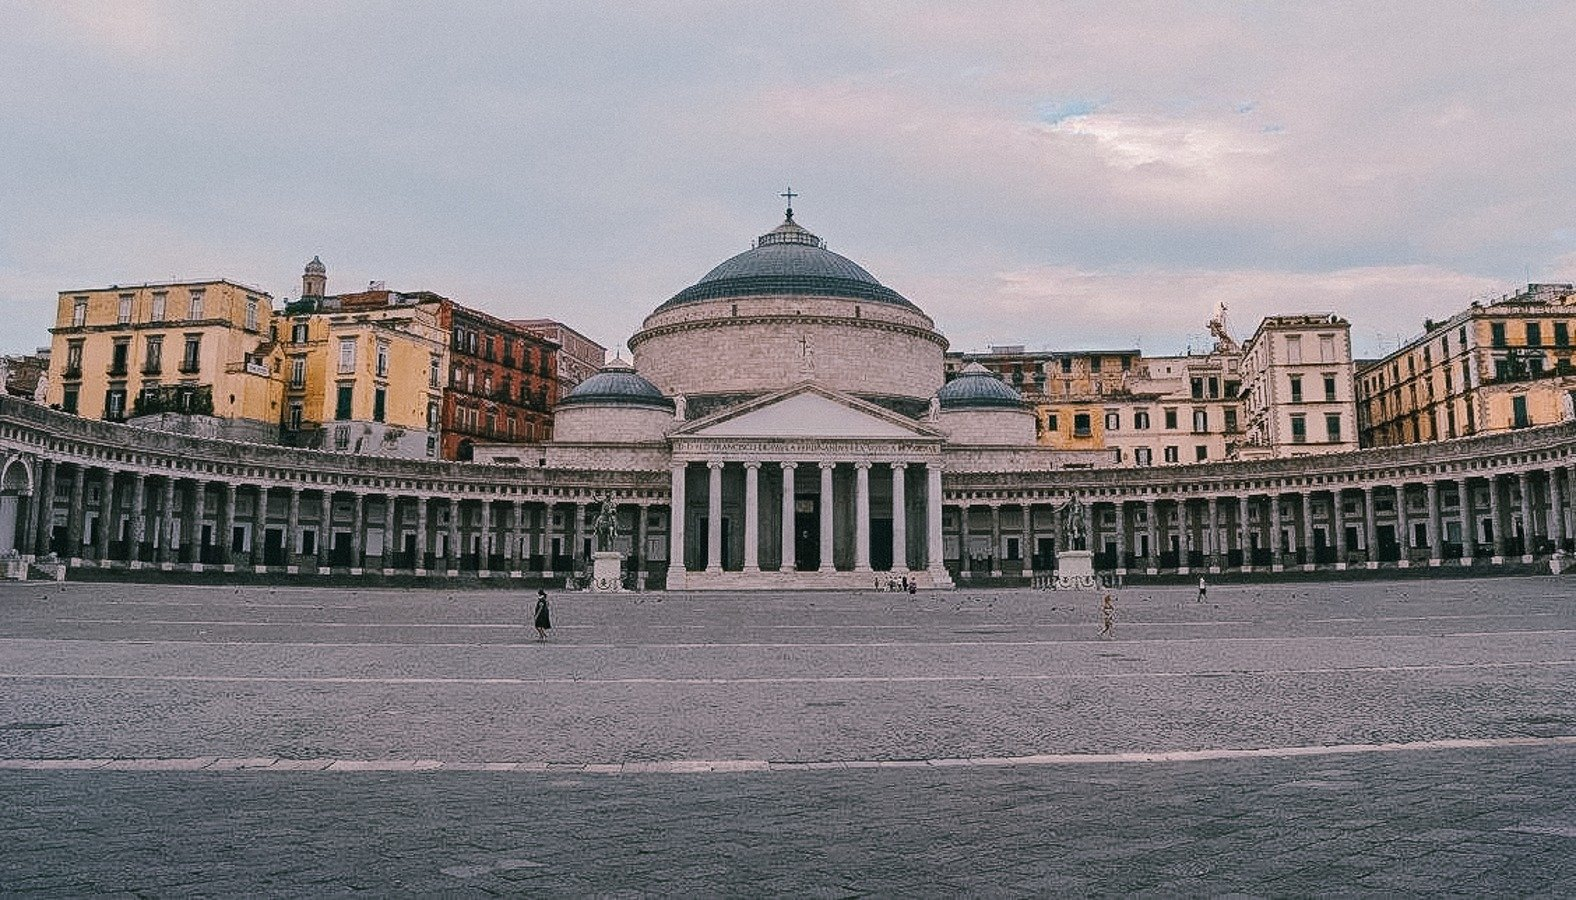 The Naples Opera Building is a great place to visit